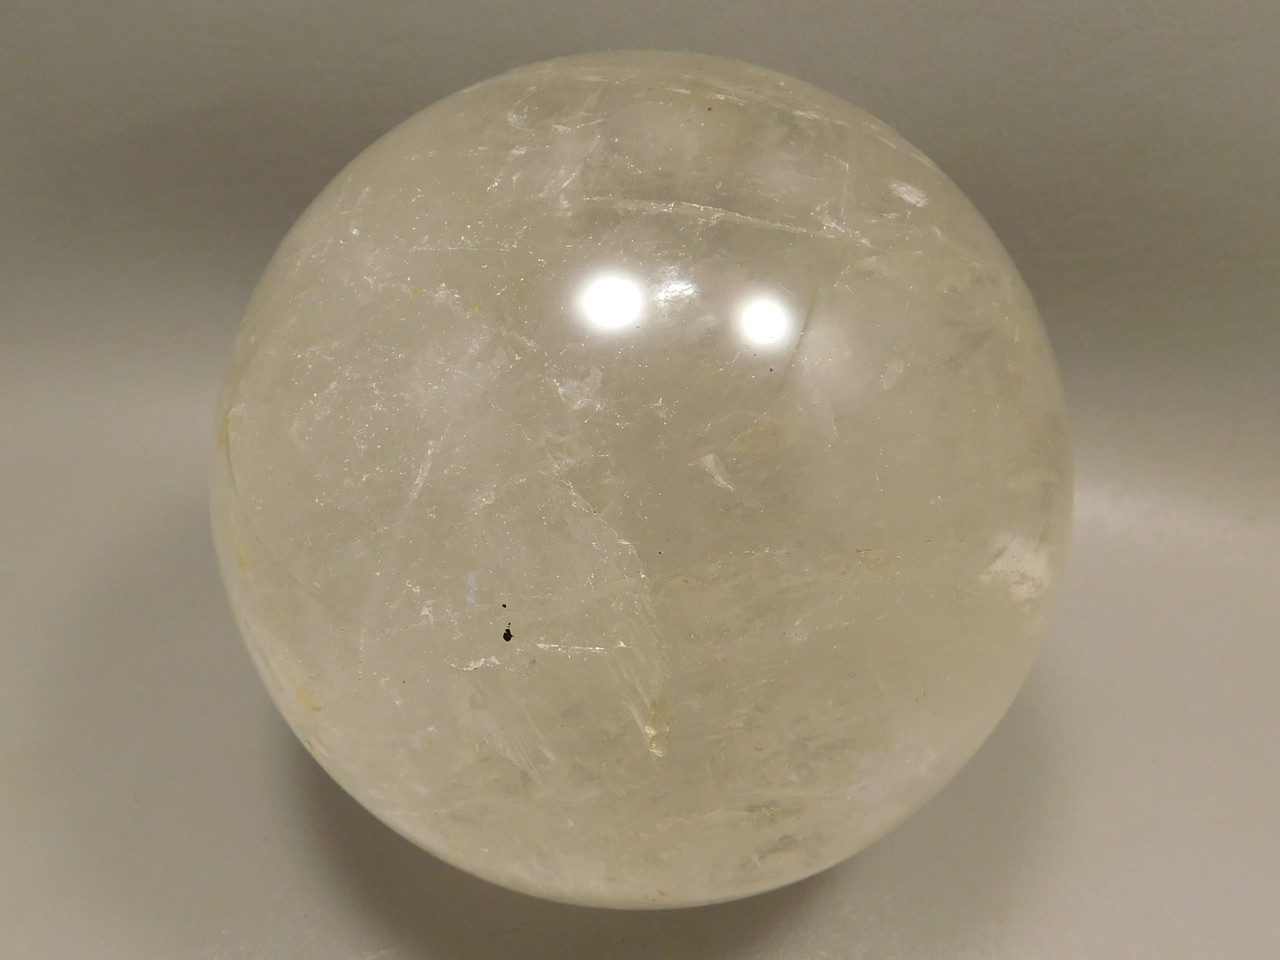 Natural Quartz Crystal Ball Large 4.2 inch Polished Stone Sphere #O1